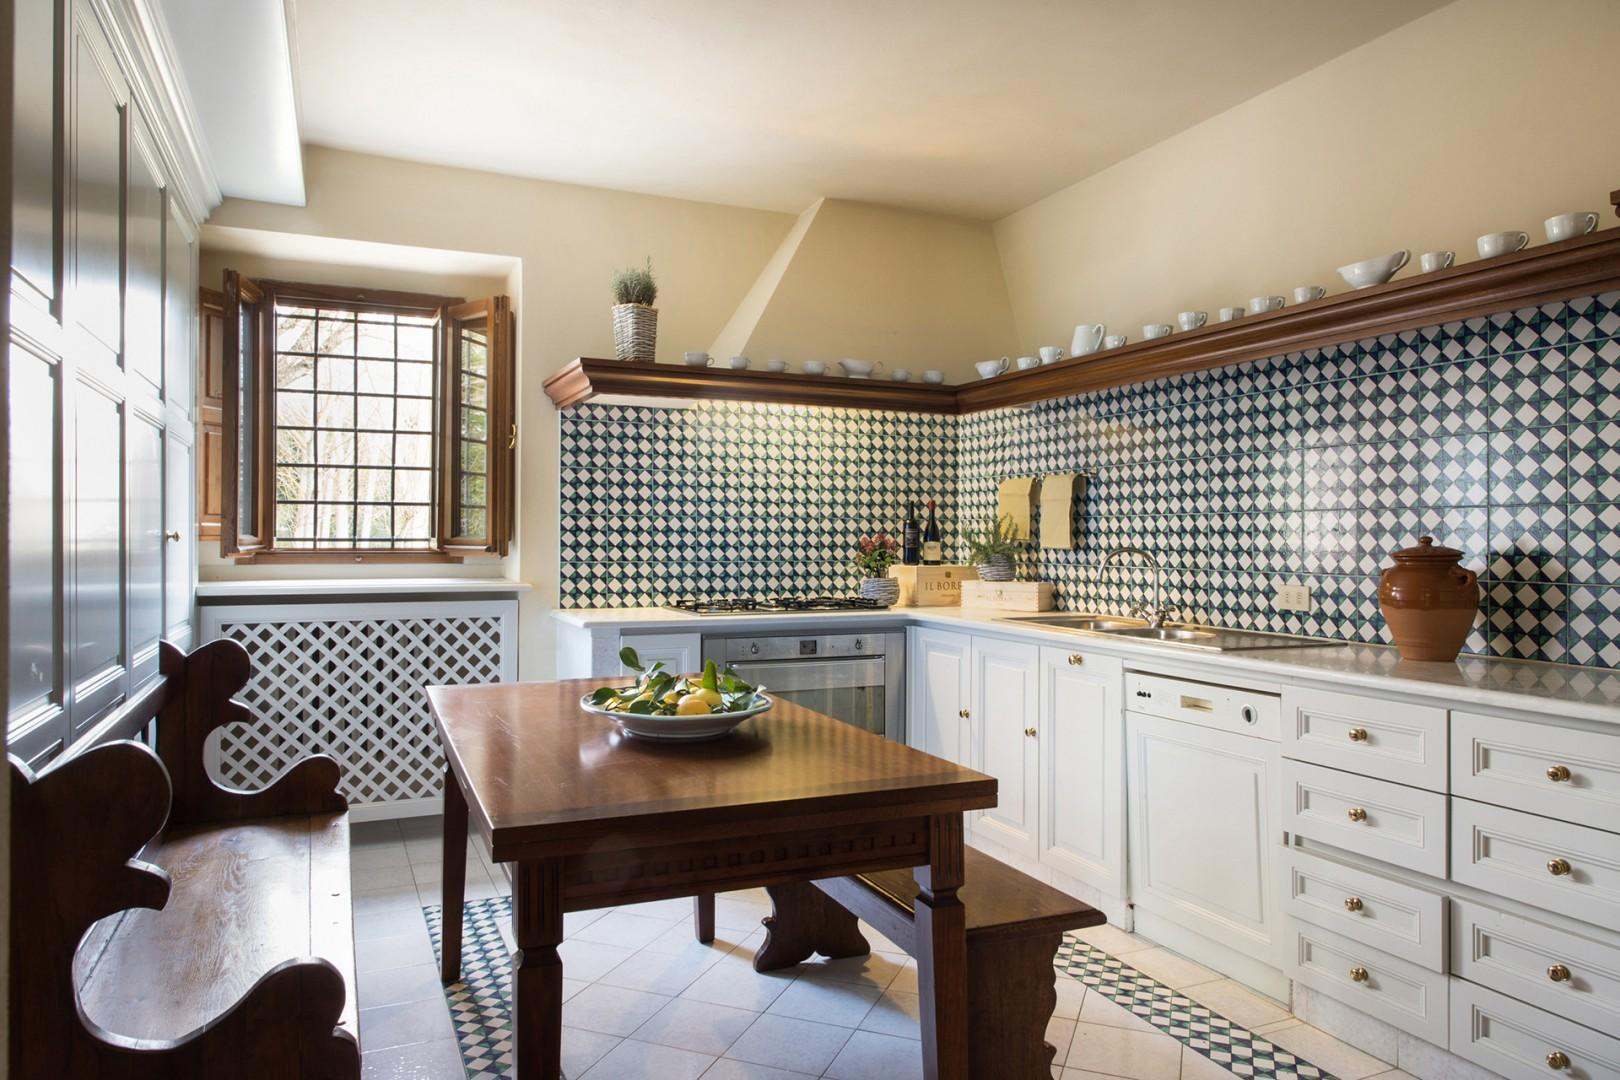 Fully equipped country kitchen.